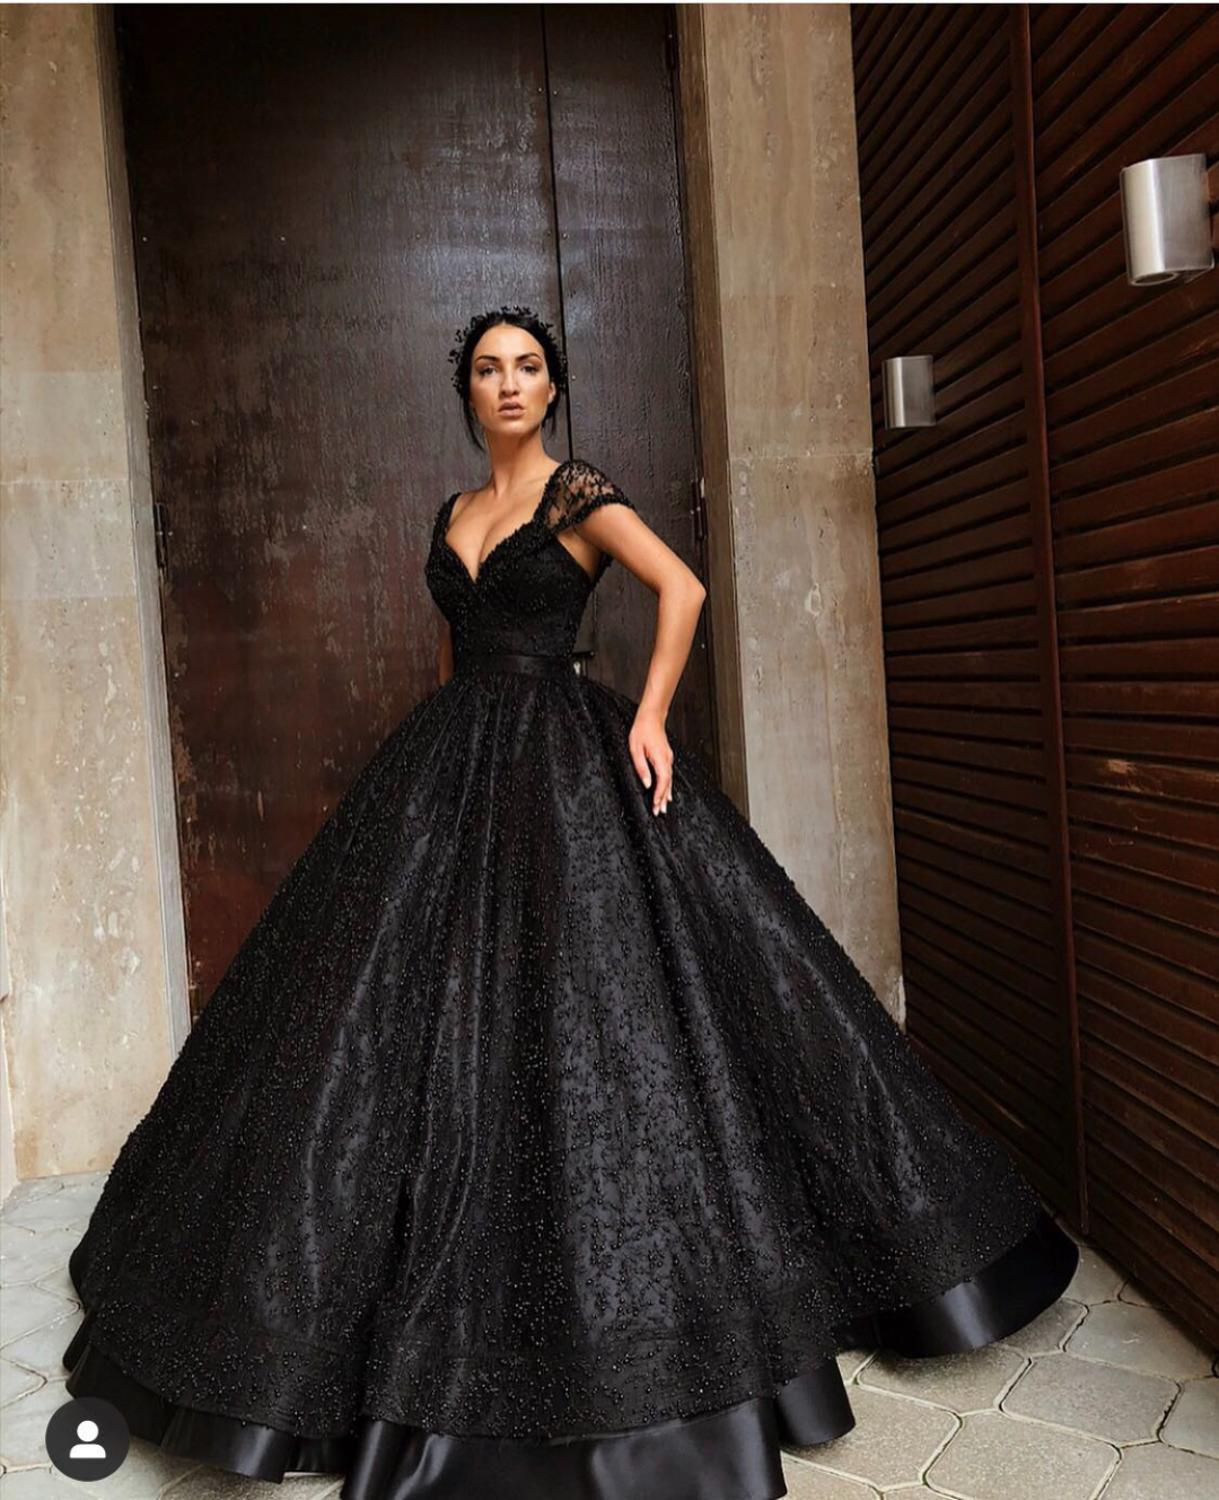 Luxury Black Ball Gown Beaded Prom Dress Off Shoulder V Neck Open Back  Women Formal Evening Dresses Long Plus Size Party Gowns|Prom Dresses| -  AliExpress